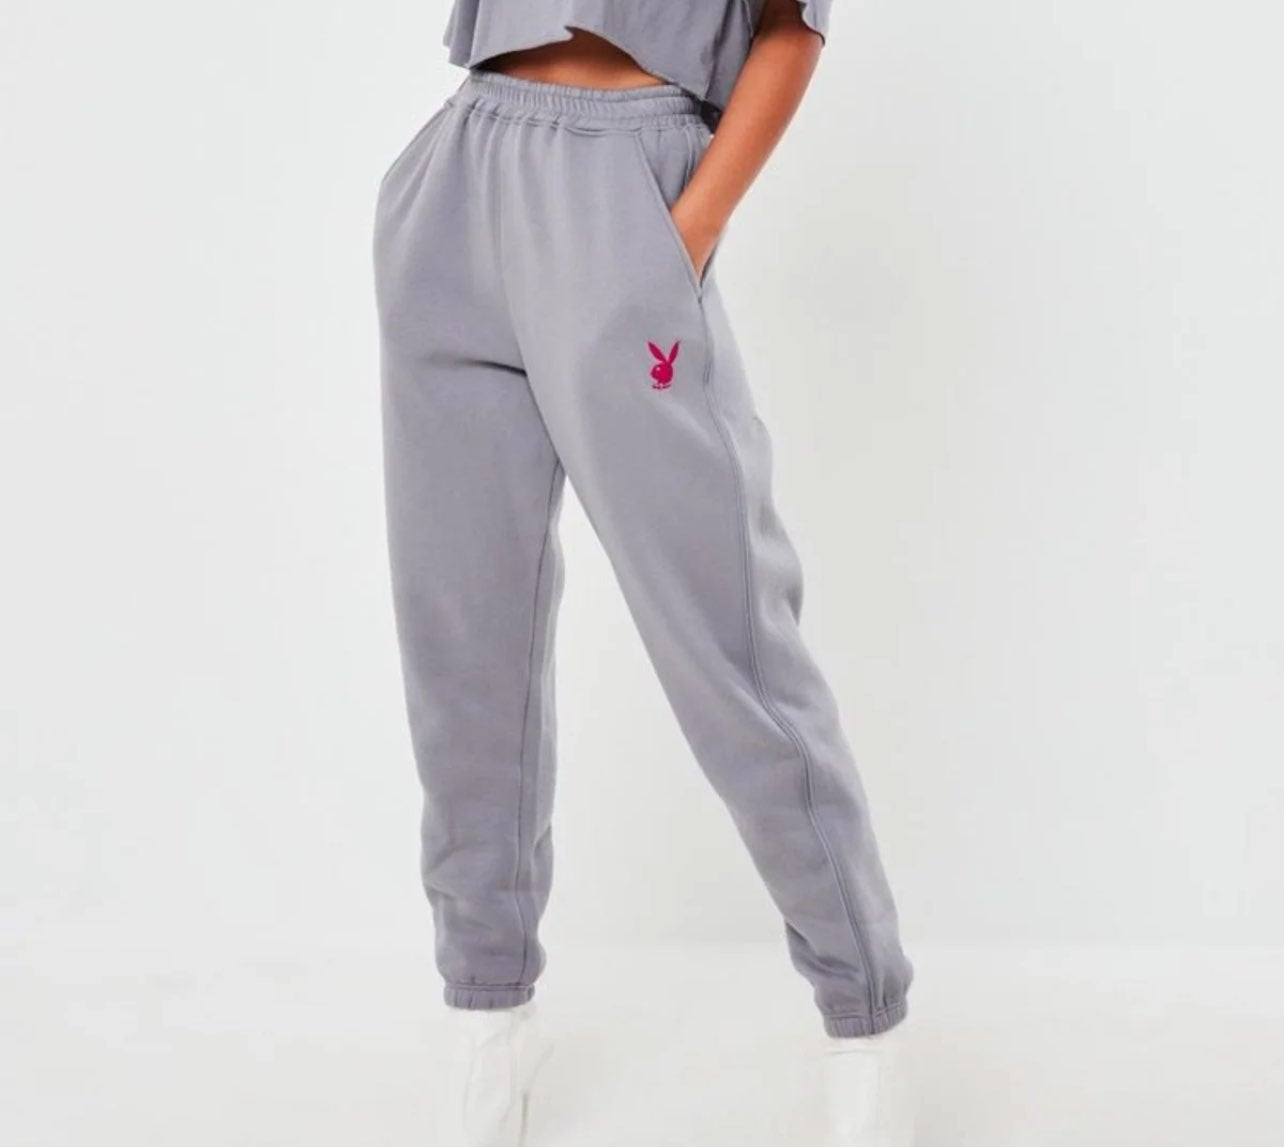 playboy x missguided jogger